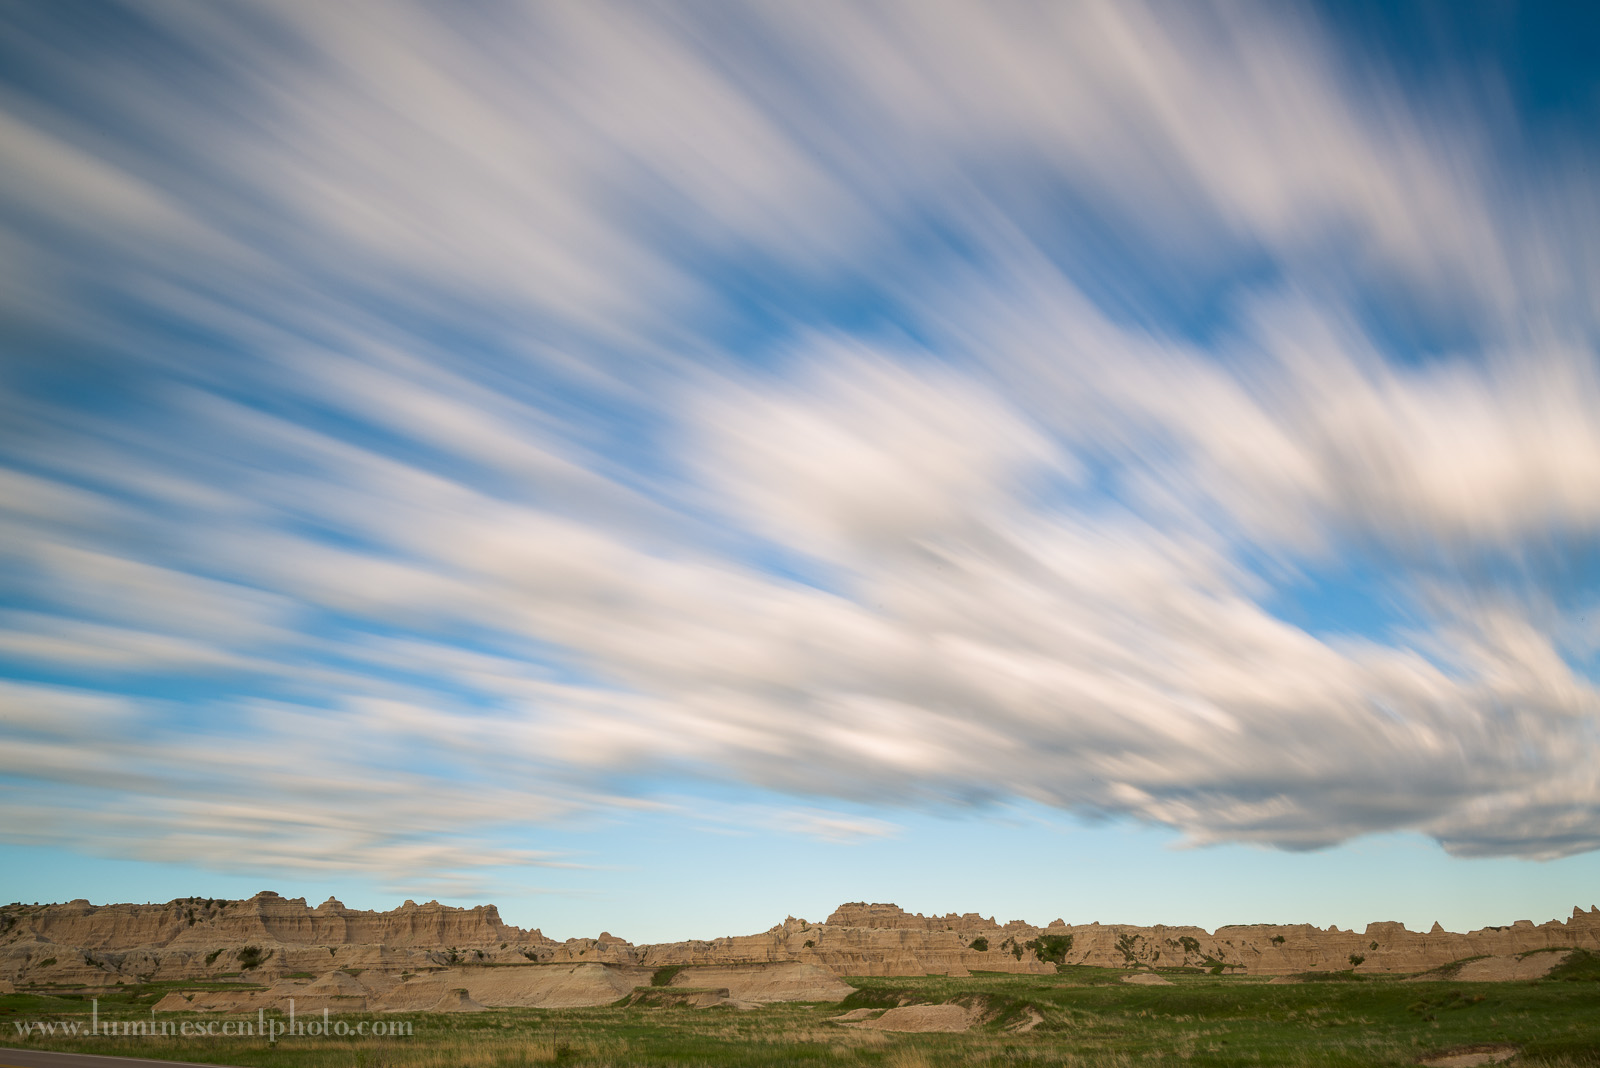 Long exposure in Badlands National Park using a Singh-Ray 10-stop Mor-slo filter.